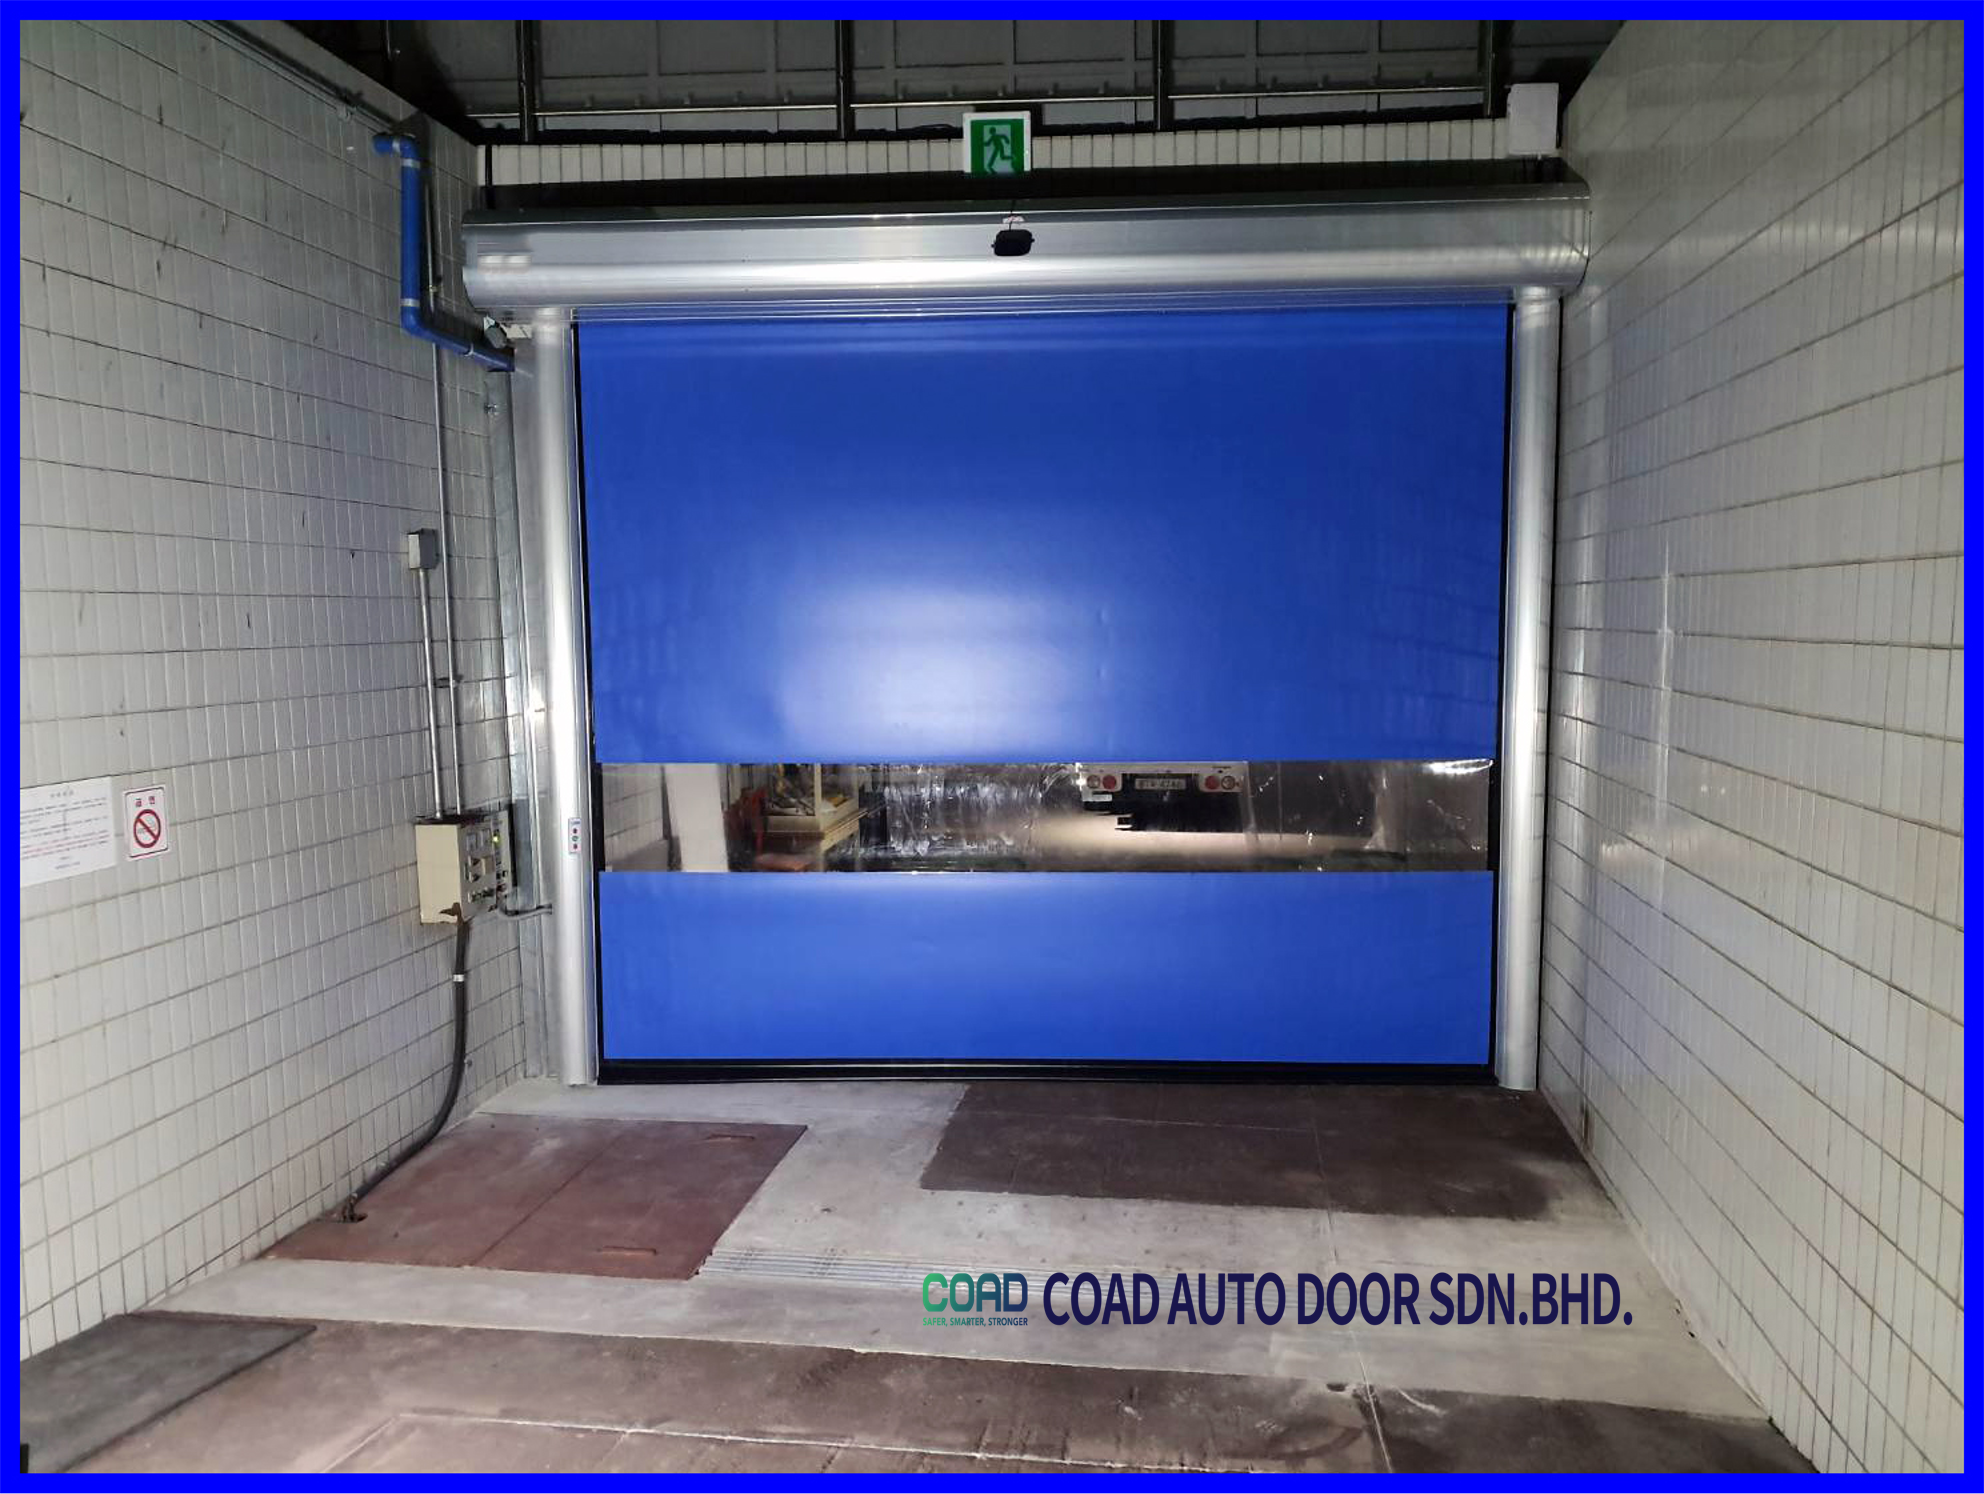 Save Up Space More Clean With Coad High Speed Door High Speed Automatic Door Doors